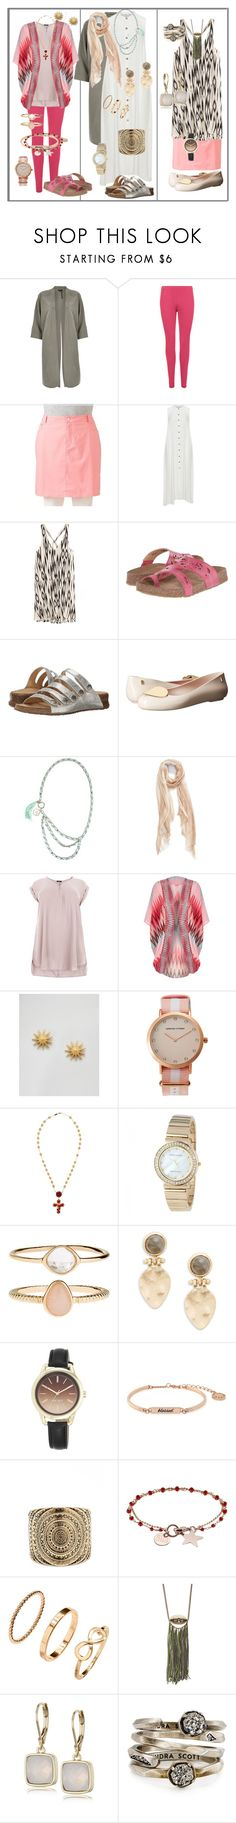 """""""Real Women: Outfit Ideas"""" by dundiddit ❤ liked on Polyvore featuring River Island, WearAll, Croft & Barrow, Mat, Haflinger, Melissa, Relish, Nordstrom, New Look and Dogeared"""